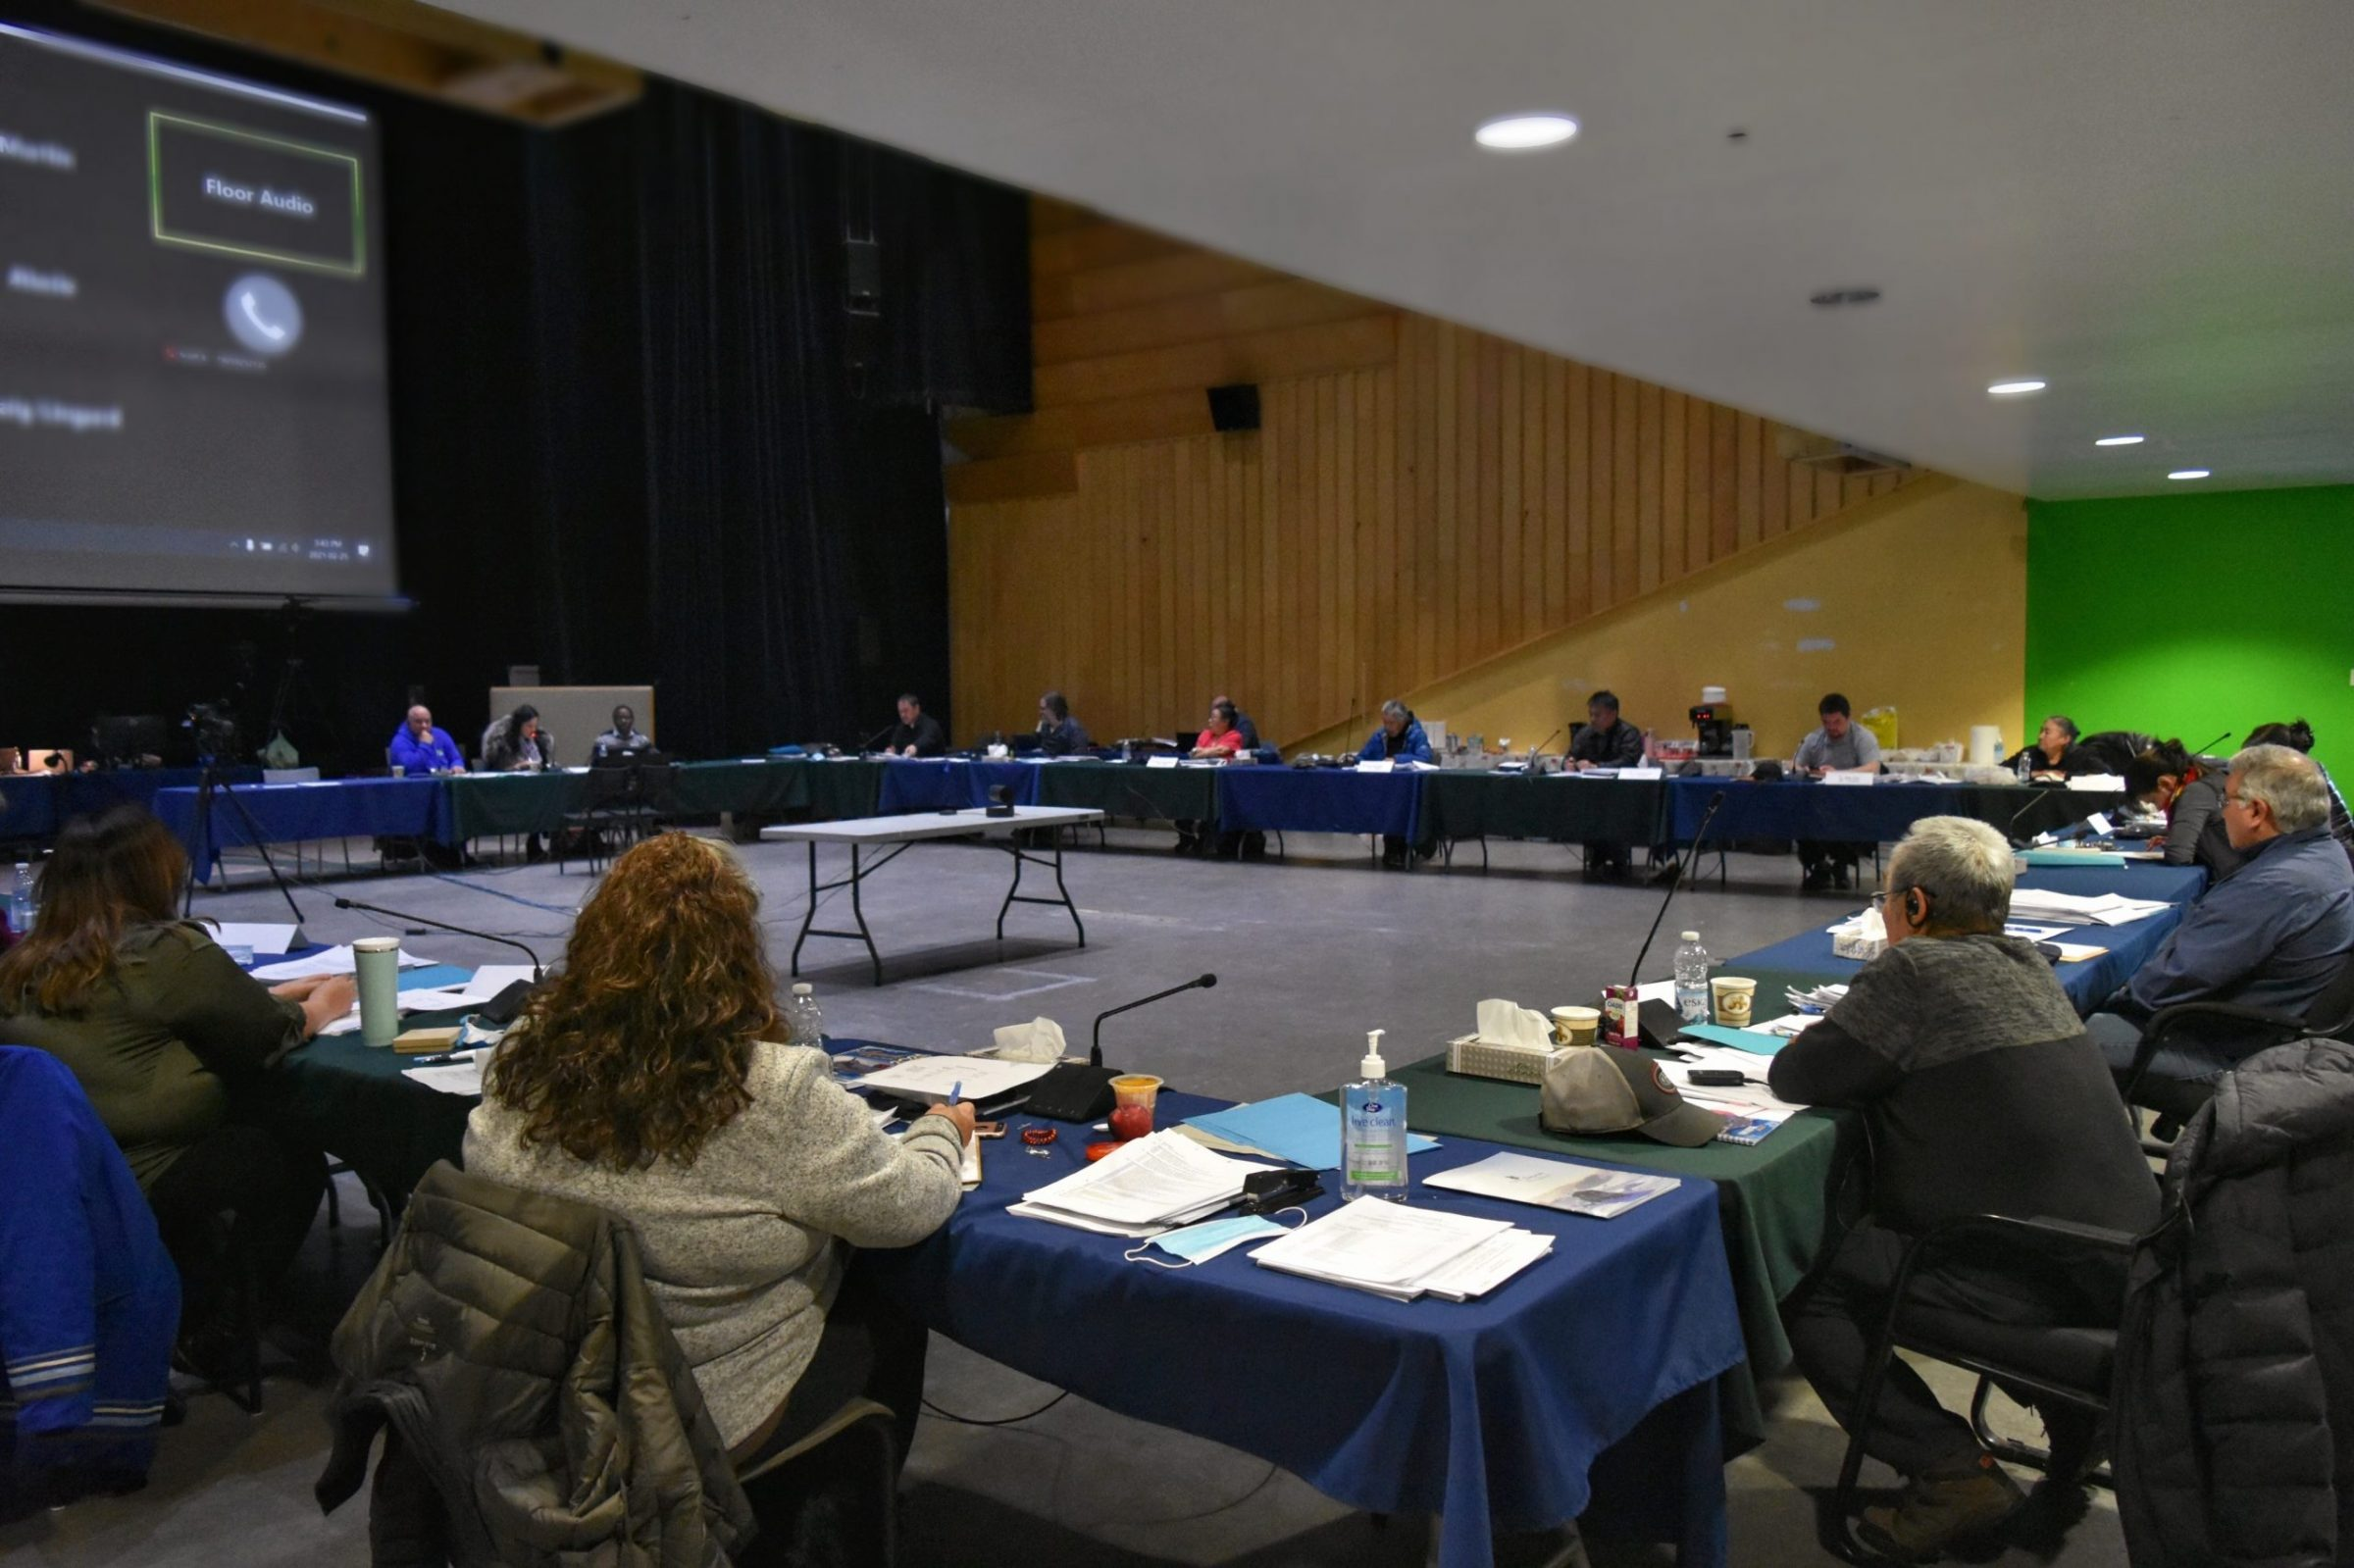 Kativik Regional Government regional councillors met last week at the Katittavik Town Hall in Kuujjuaq Feb. 22-25 — the first time the organization has held an in-person meeting of its regional councillors since last February. A group of photojournalism students from Jaanimmarik school took photos of the meetings for Nunatsiaq News on Thursday, led by instructor Isabelle Dubois. (Photo by Annie Lock)